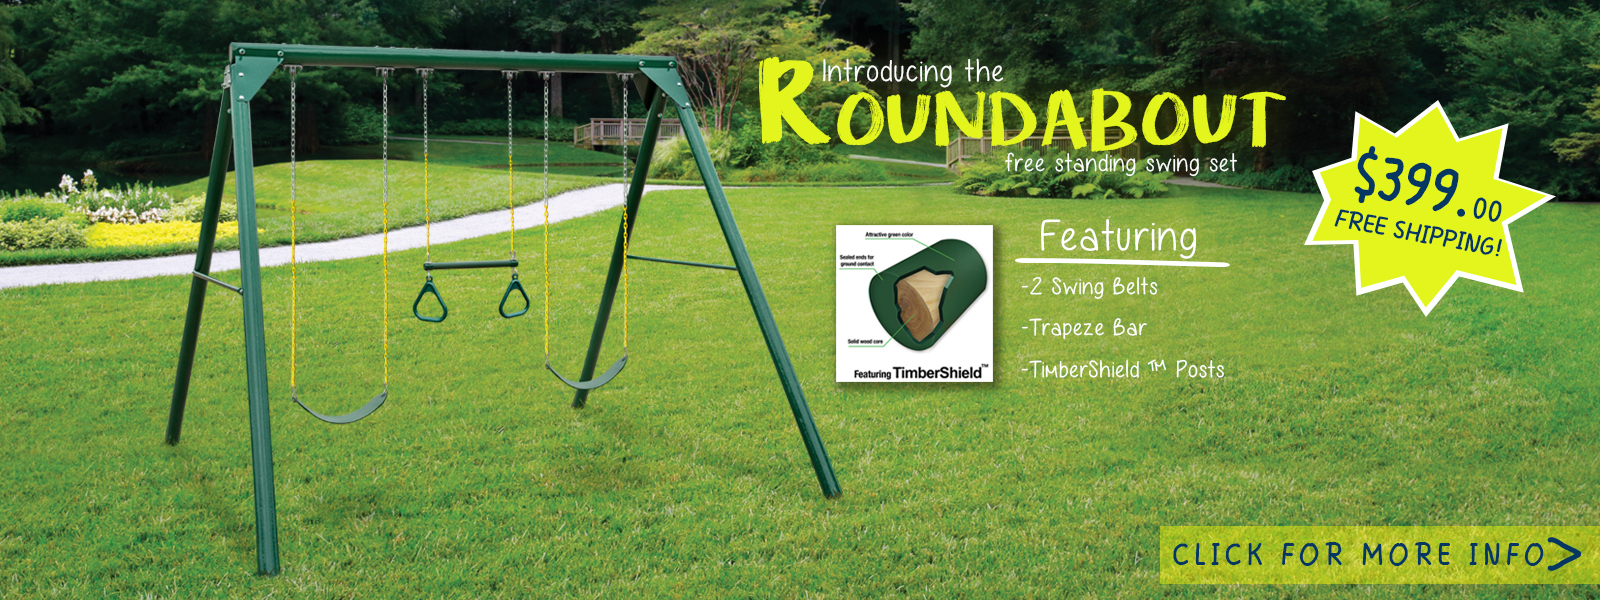 Roundabout Swing Slider